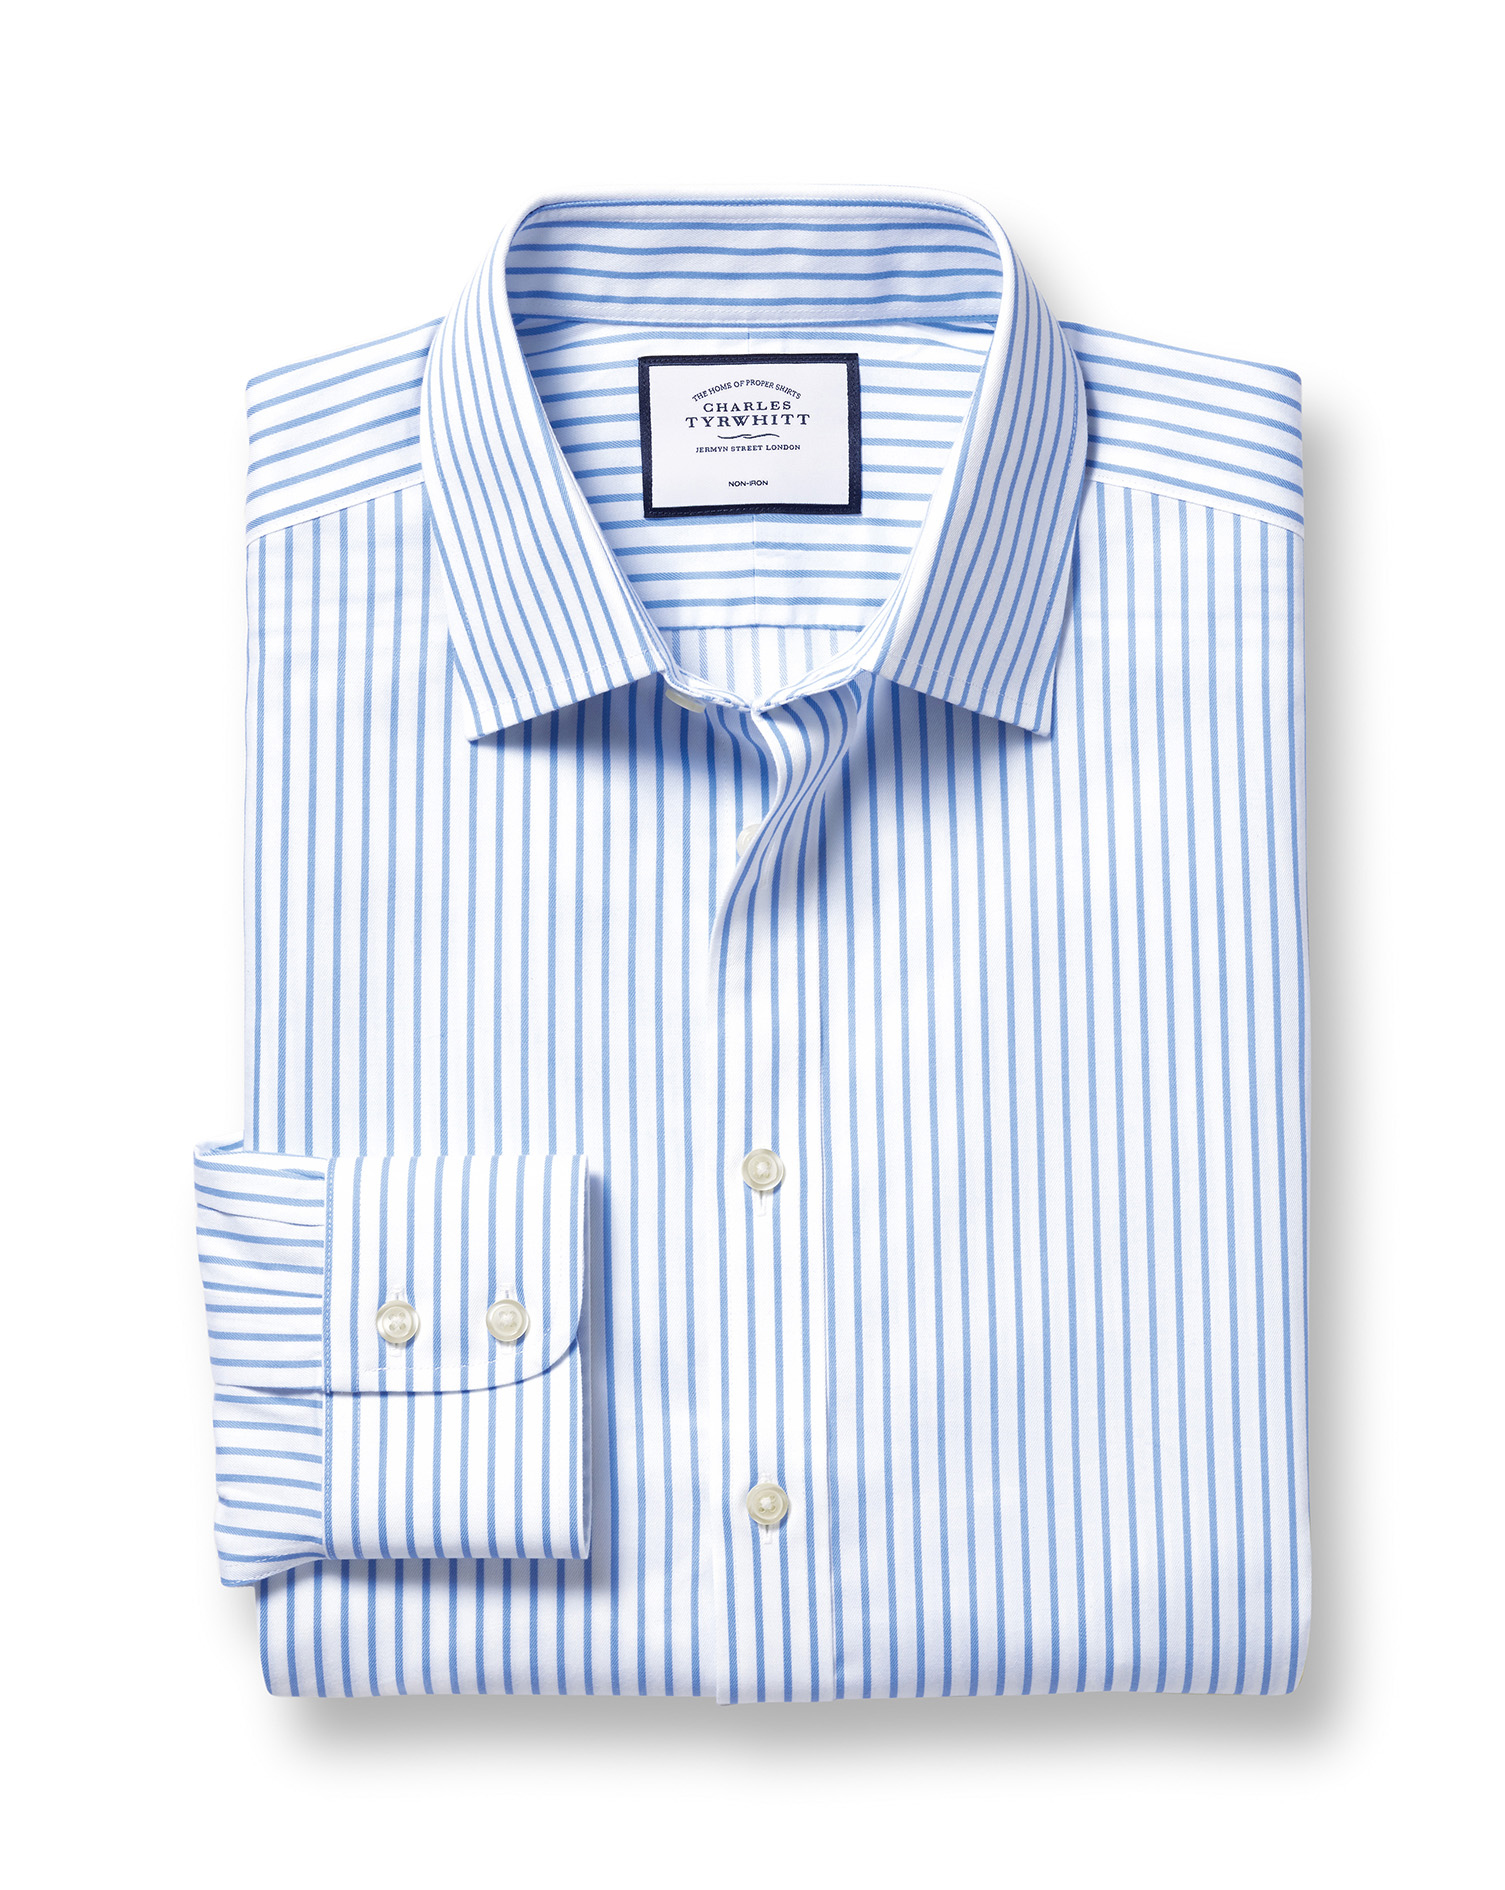 Slim Fit Non-Iron Twill White and Sky Blue Stripe Cotton Formal Shirt Single Cuff Size 16/32 by Char